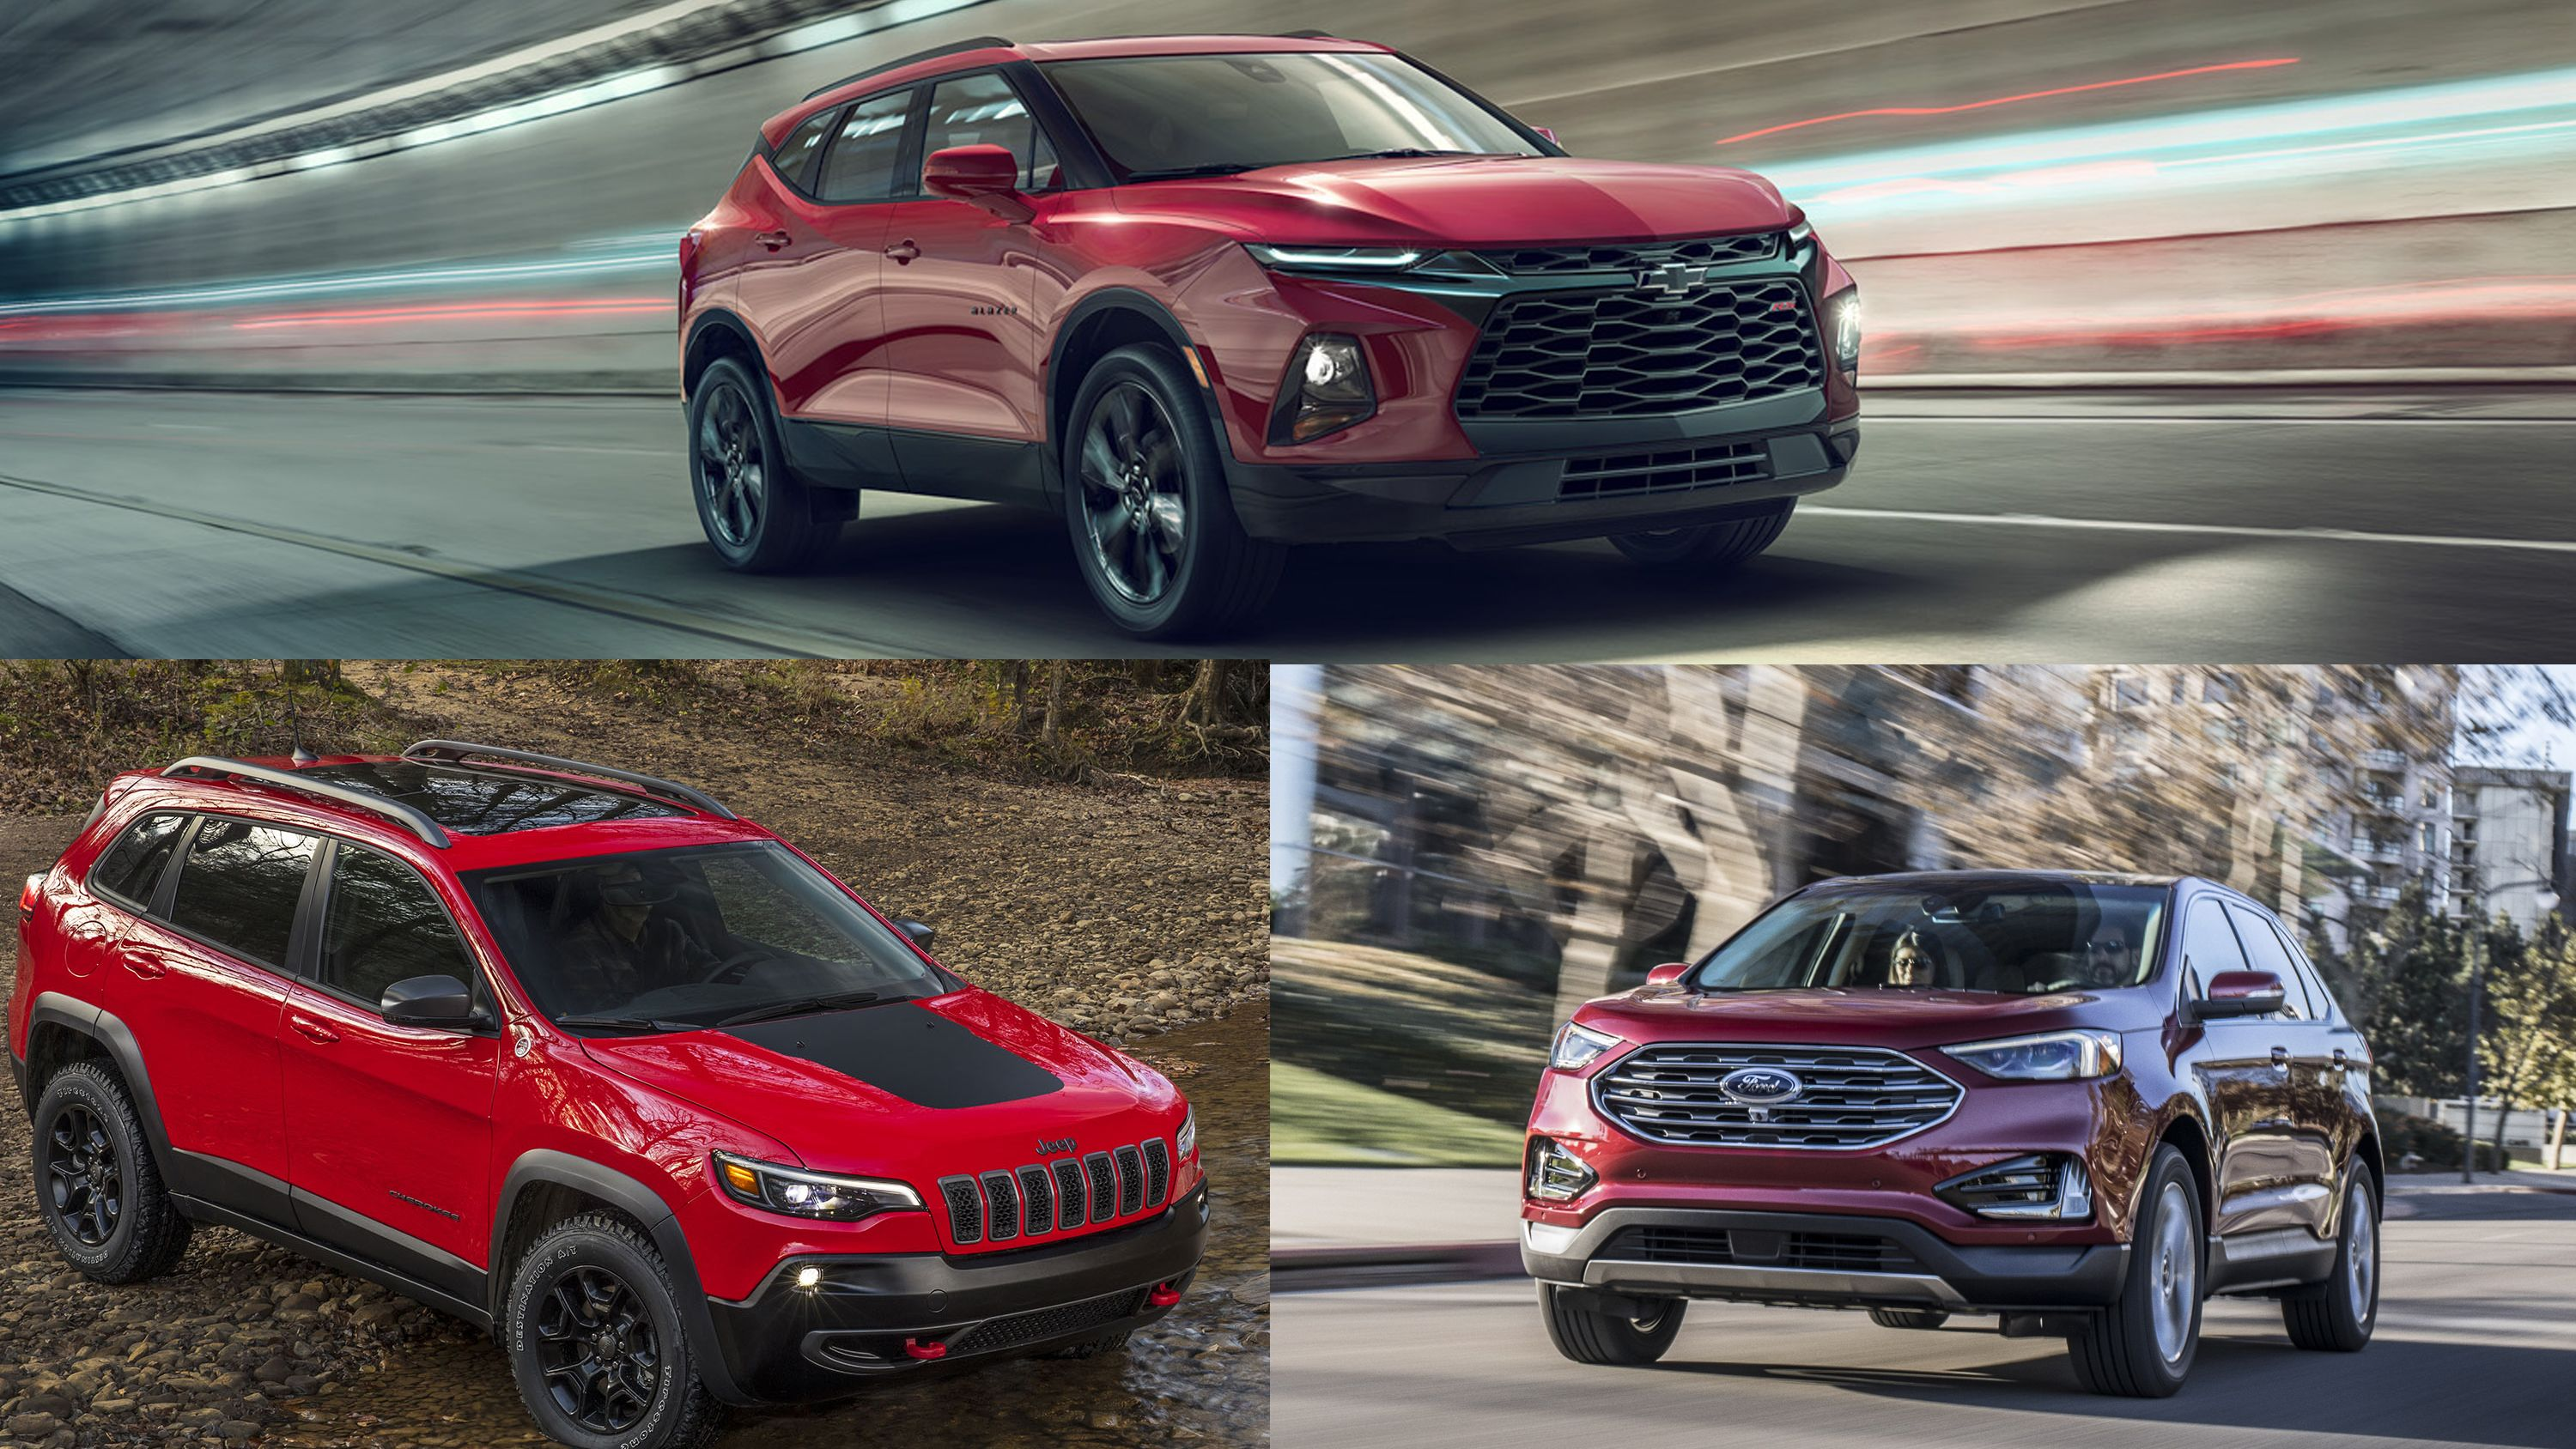 Comparing The Chevy Blazer The Ford Edge And The Jeep Cherokee Jeep Cherokee Chevrolet Suv Chevy